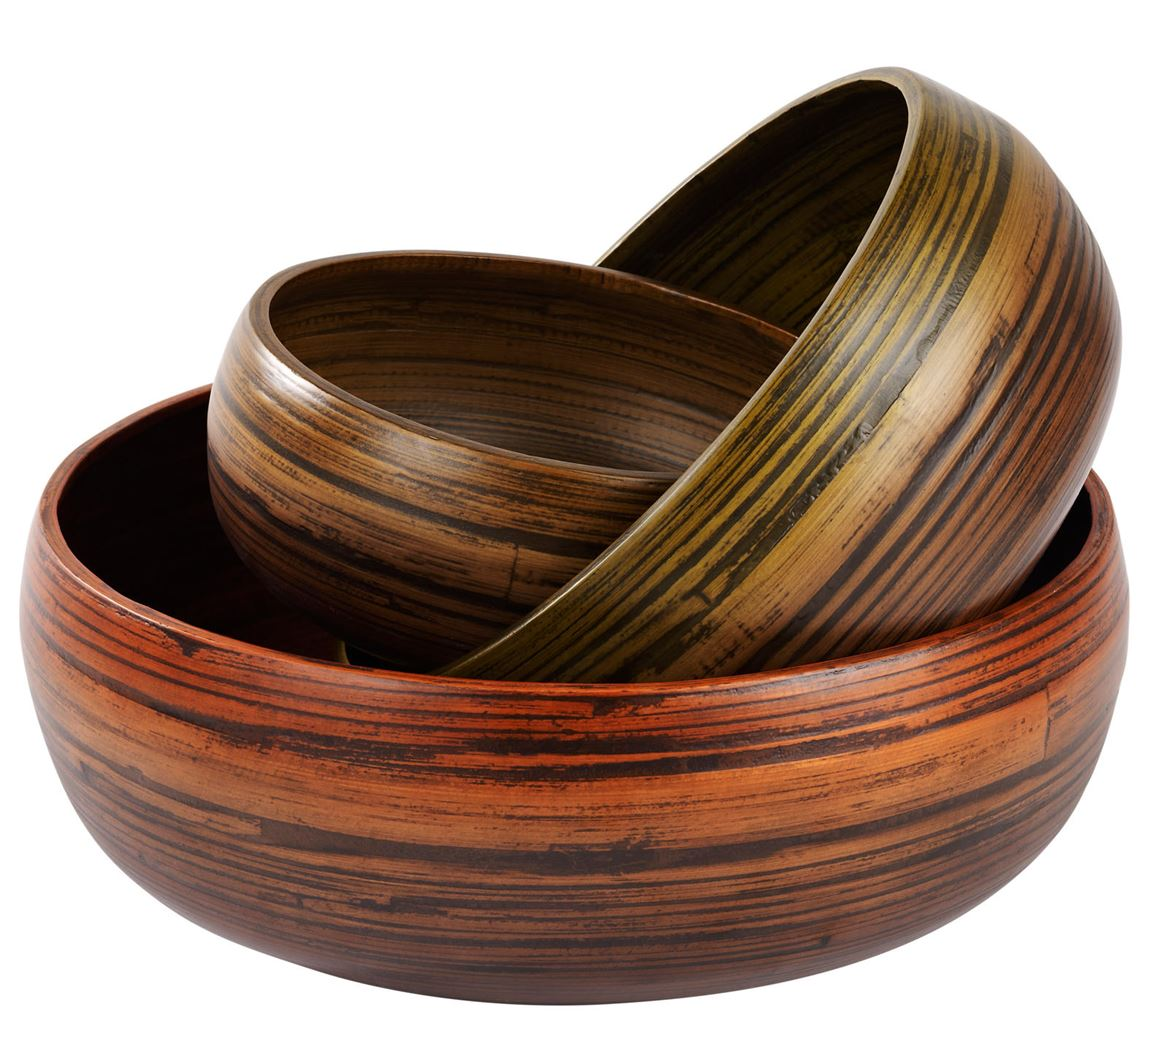 Fuente Decorativa Home Bamboo Fuente Decorativa S Marrón A 9 Cm Ø 22 Cm